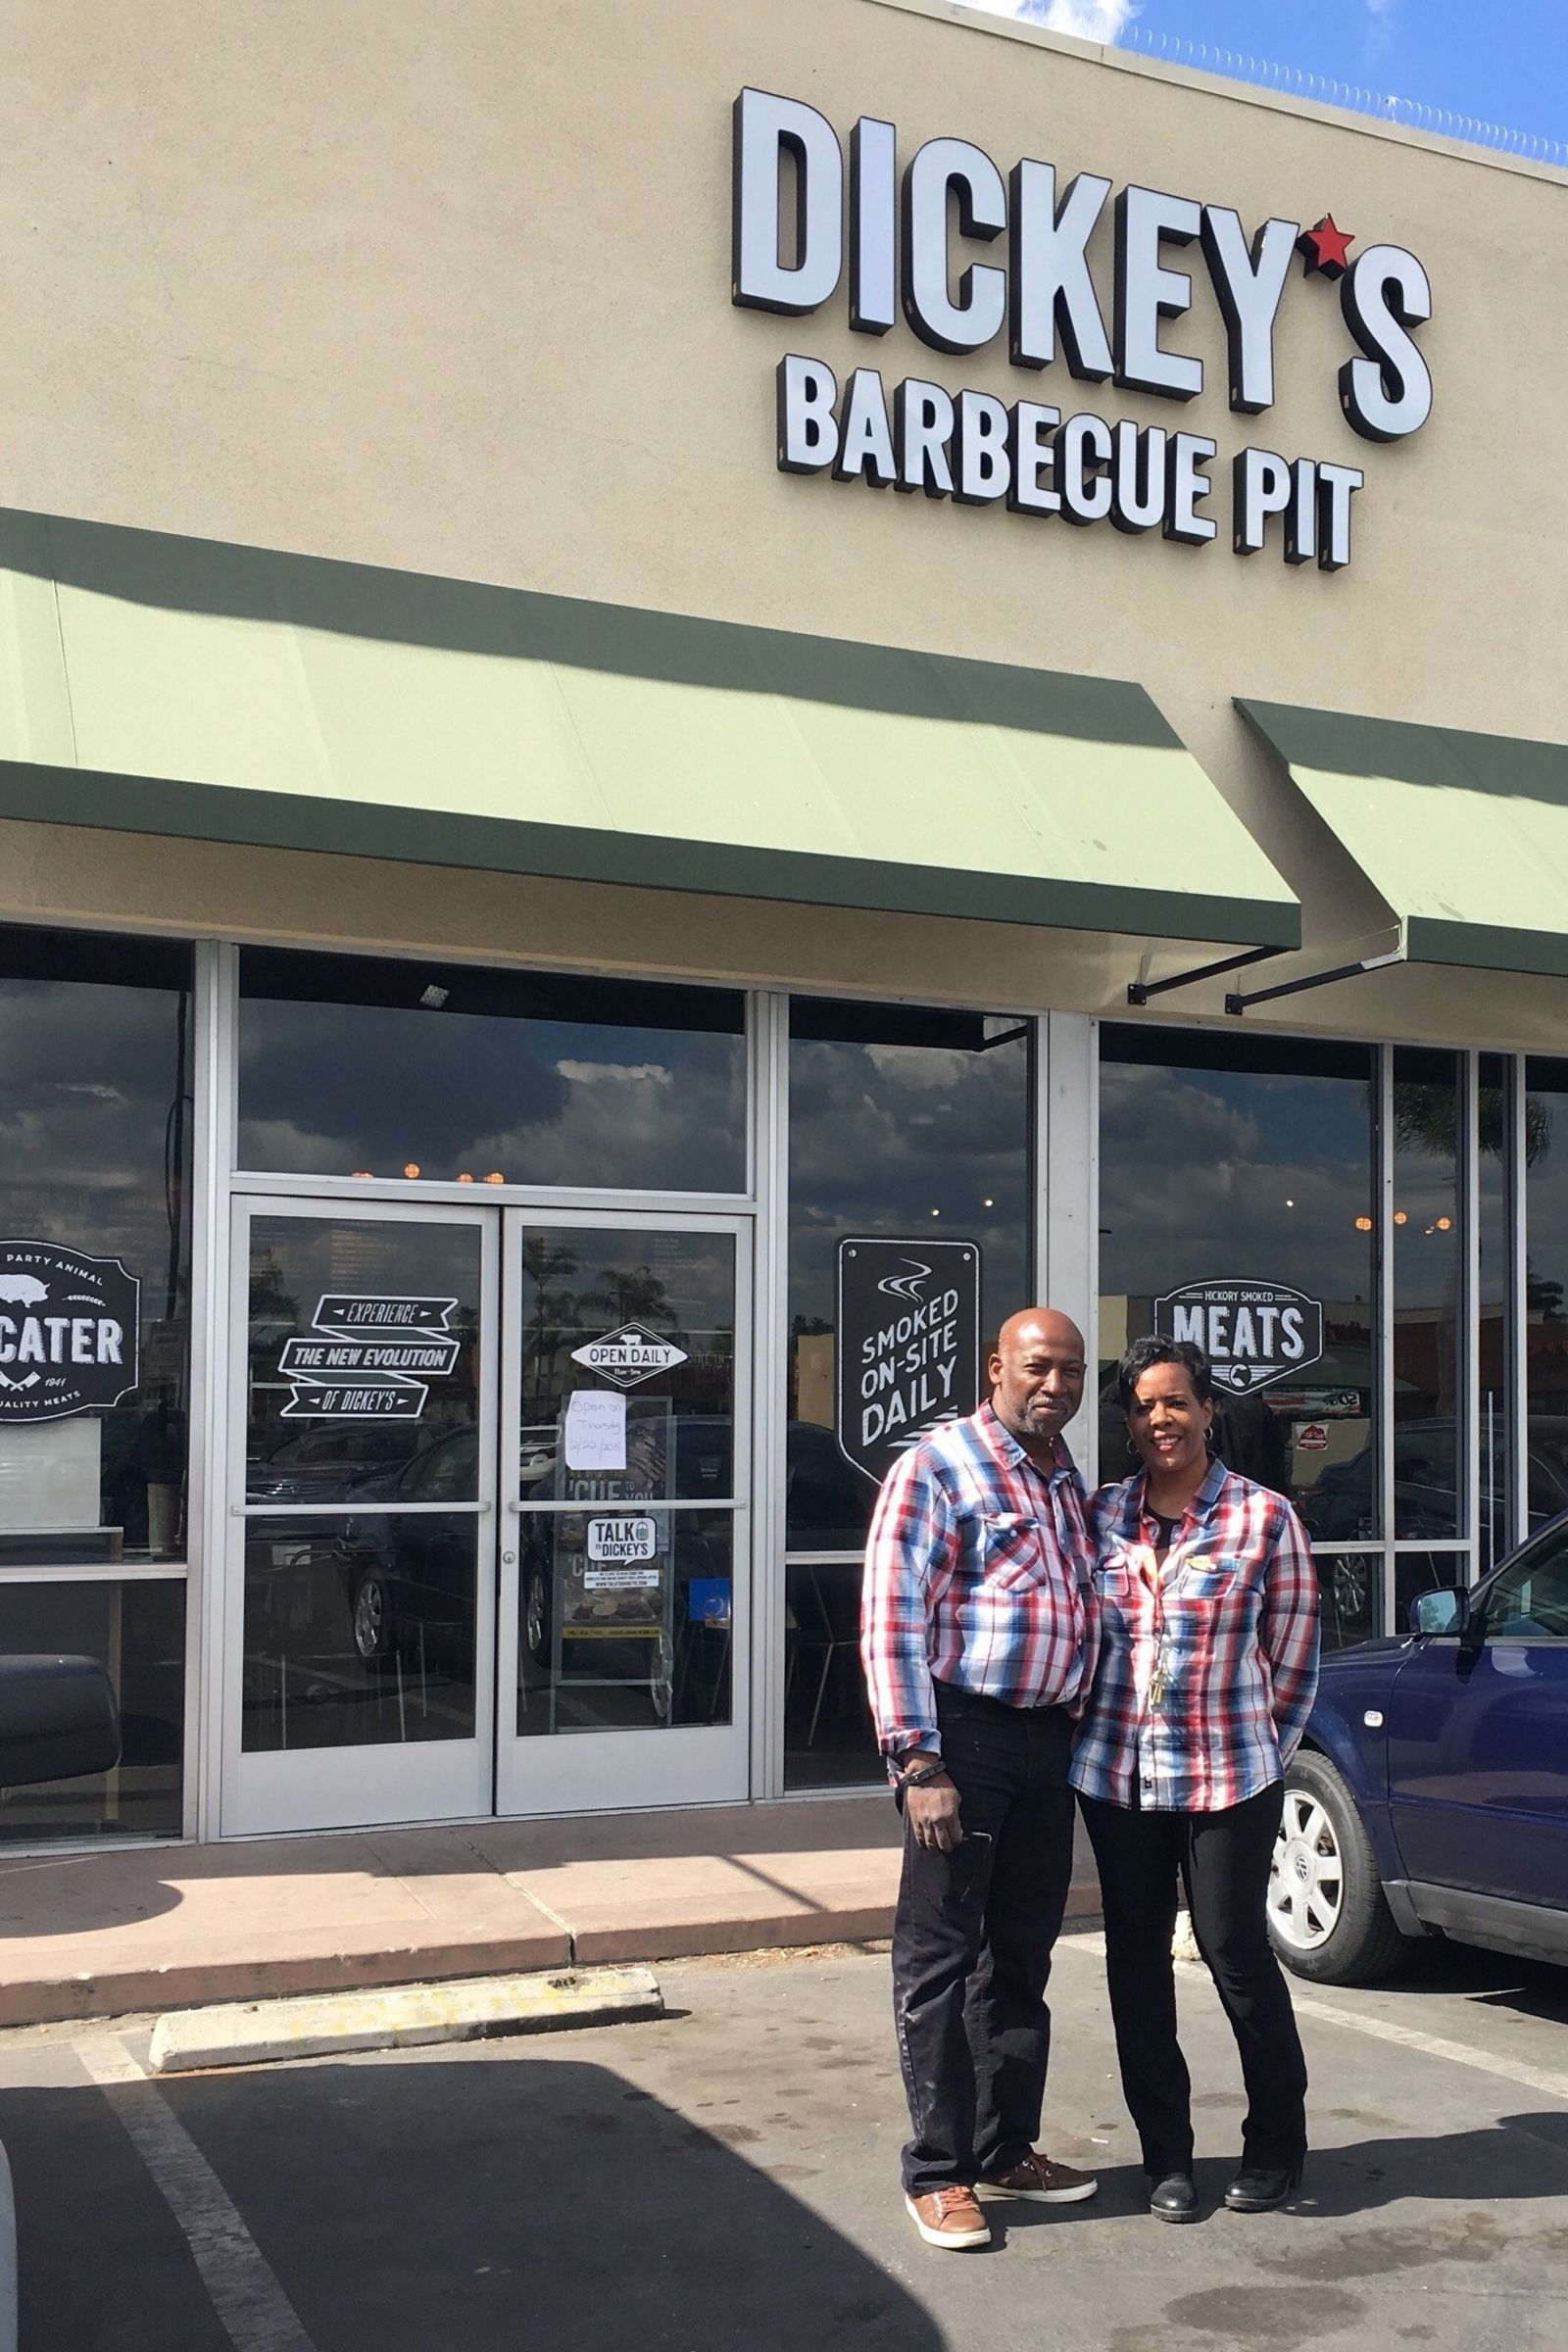 Local Restauranteur Brings Dickey's Barbecue Pit to Compton